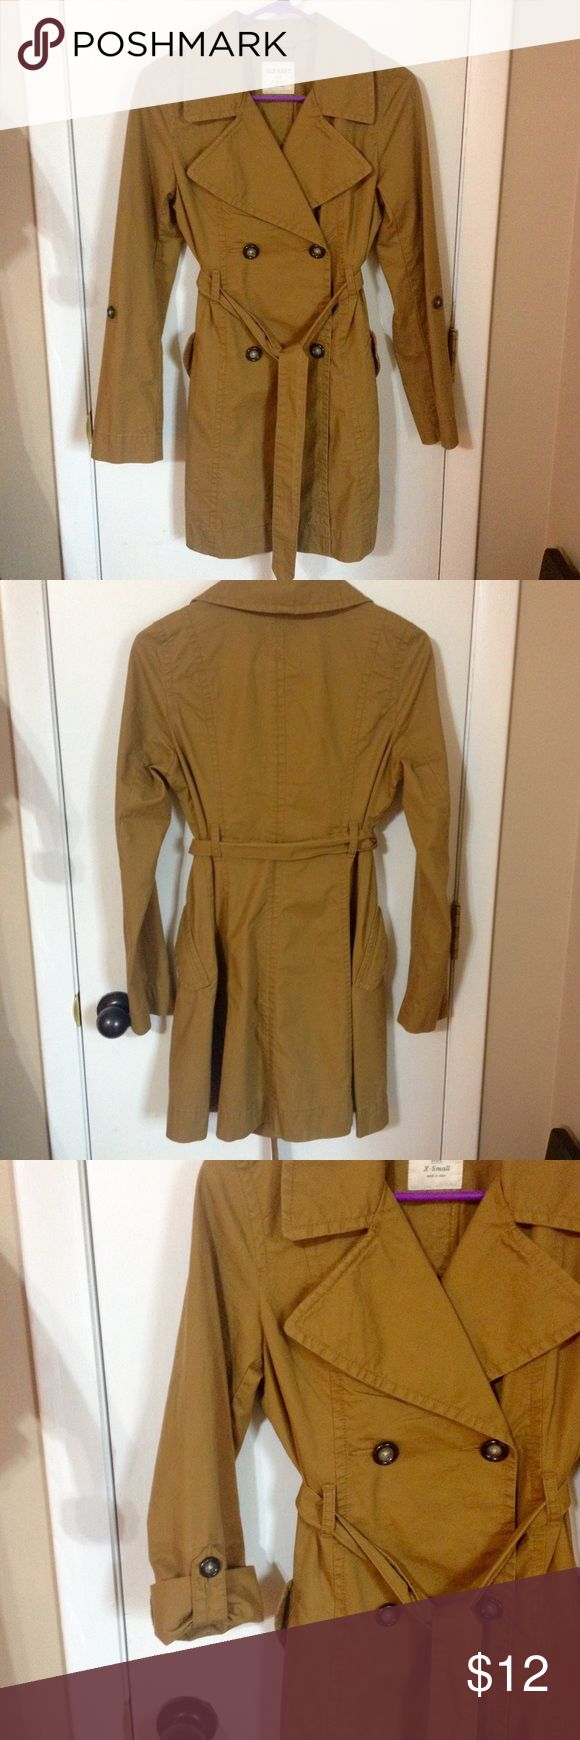 Old Navy lightweight trench coat Tan lightweight trench coat from Old Navy. Sash ties around waist through belt loops, two pockets and sleeves can be rolled up and buttoned. I wore this twice, great lightweight jacket. Old Navy Jackets & Coats Trench Coats